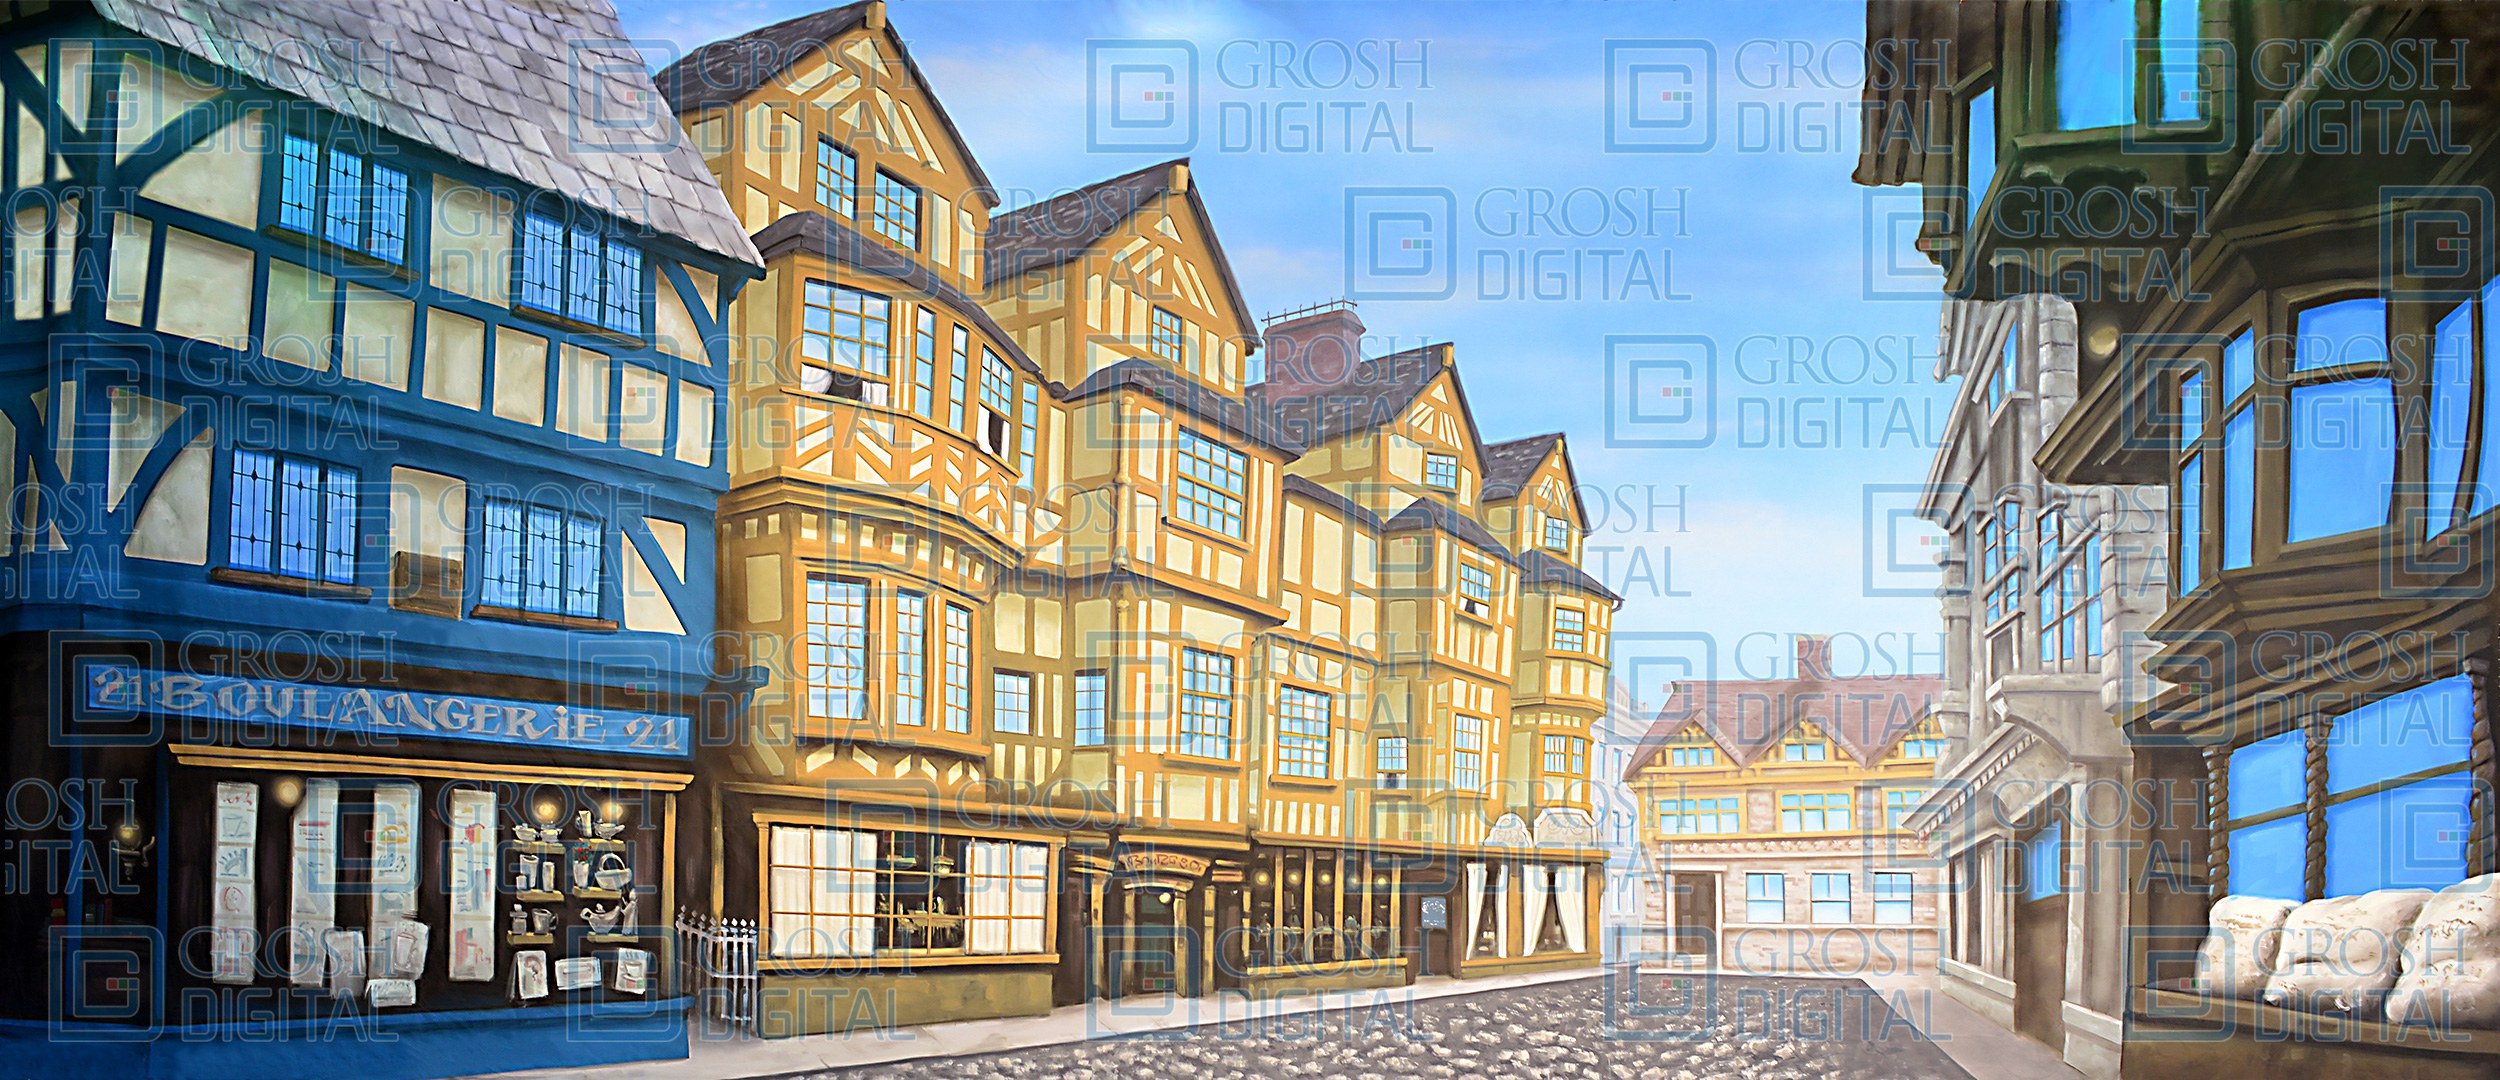 European Street 2 Projected Backdrop for Beauty and the Beast, Charlie and the Chocolate Factory, Frozen, Mary Poppins, Sleeping Beauty, Streets, Towns, Villages